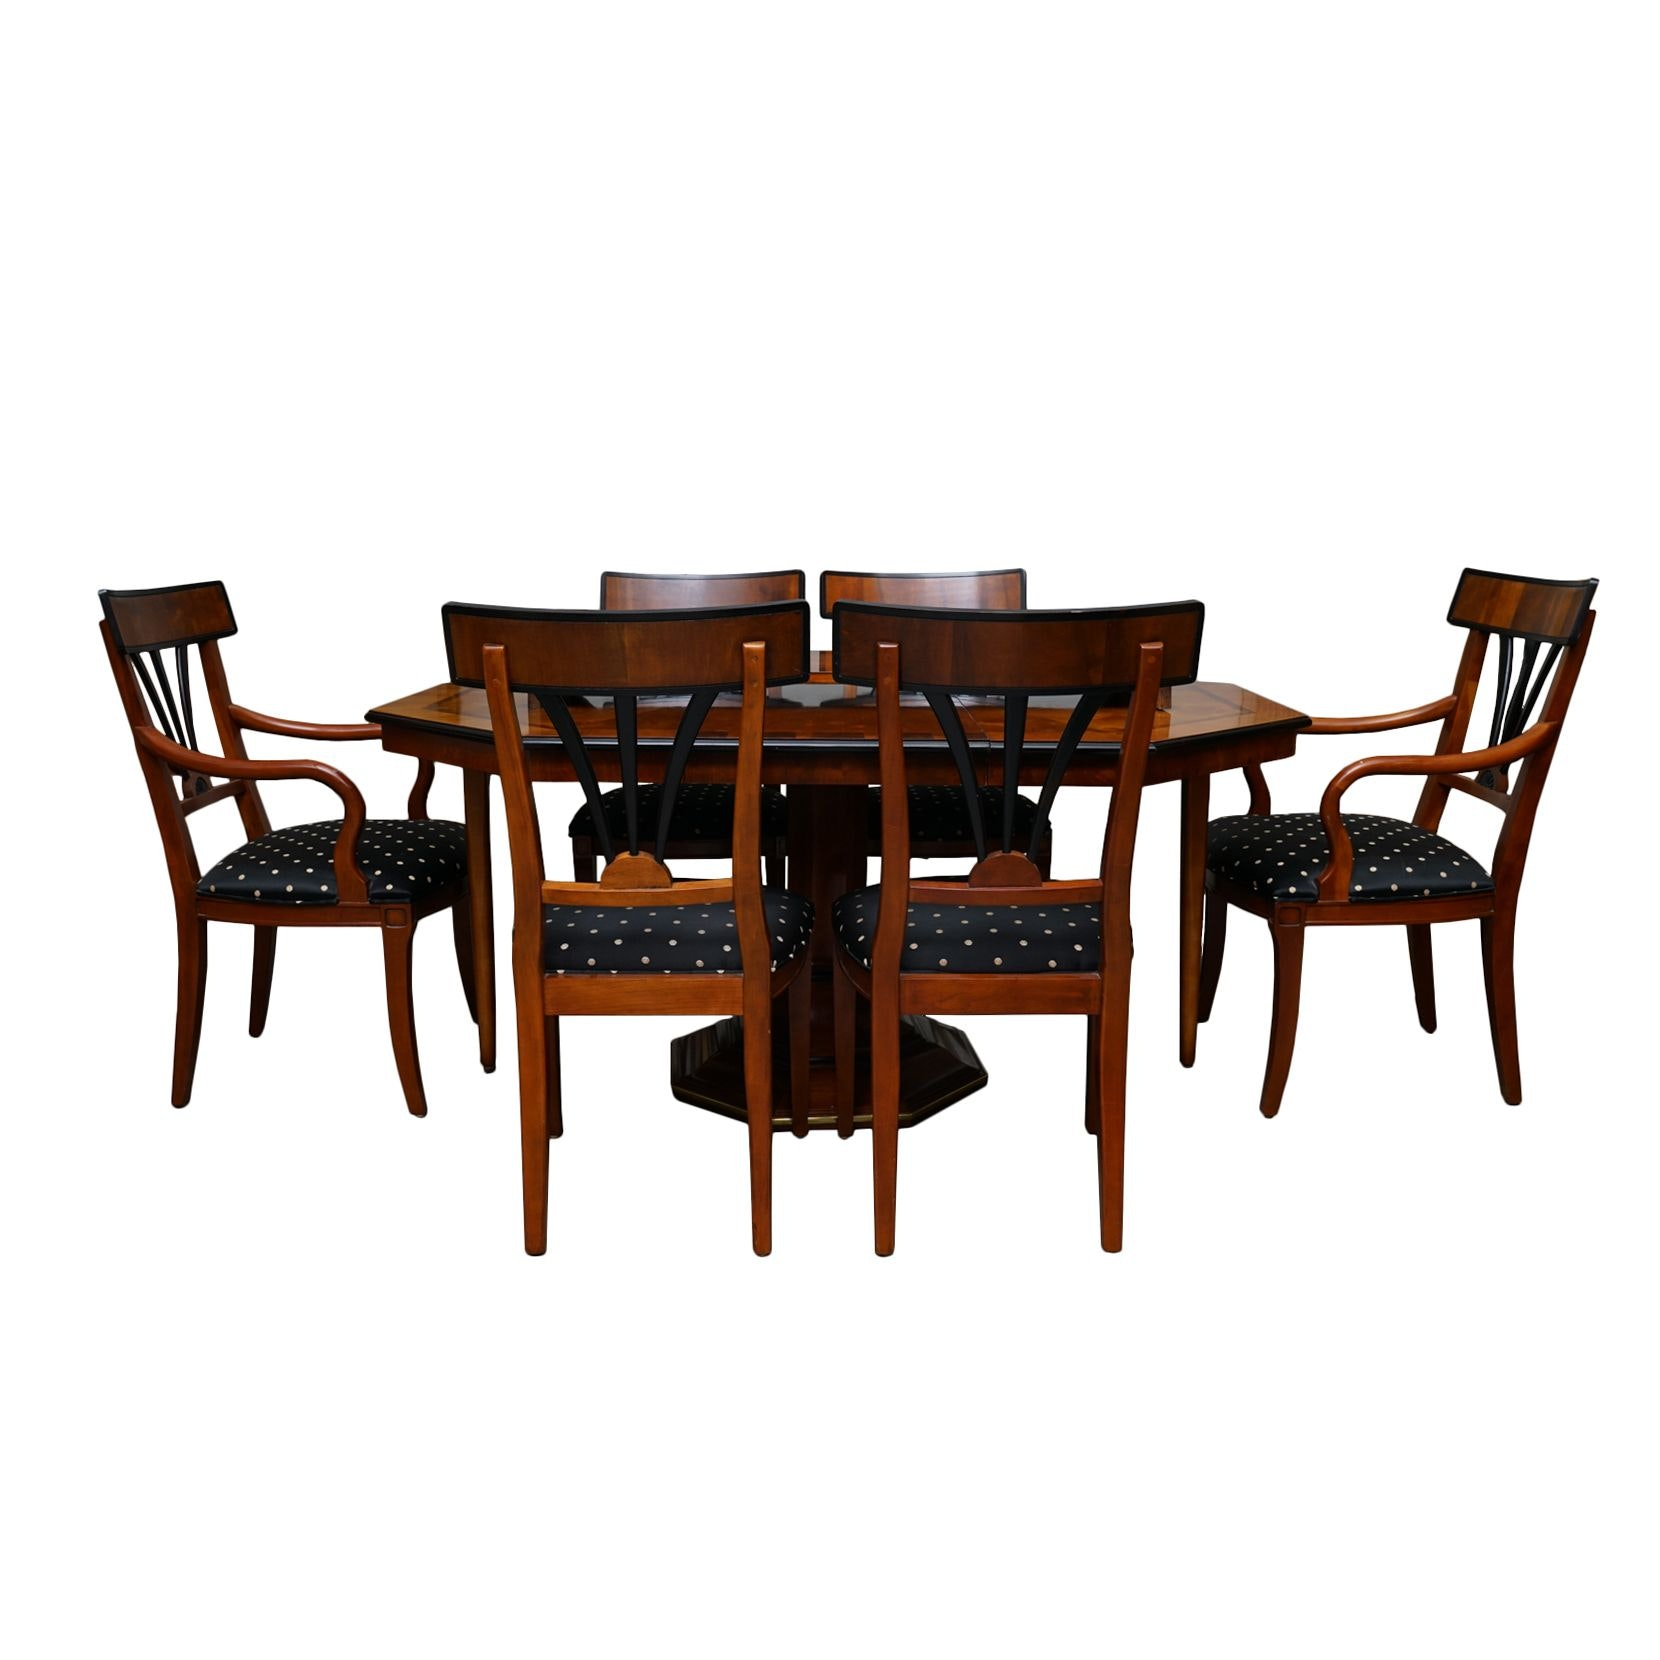 Art Deco Style Octagonal Dining Table with Klismos Chairs